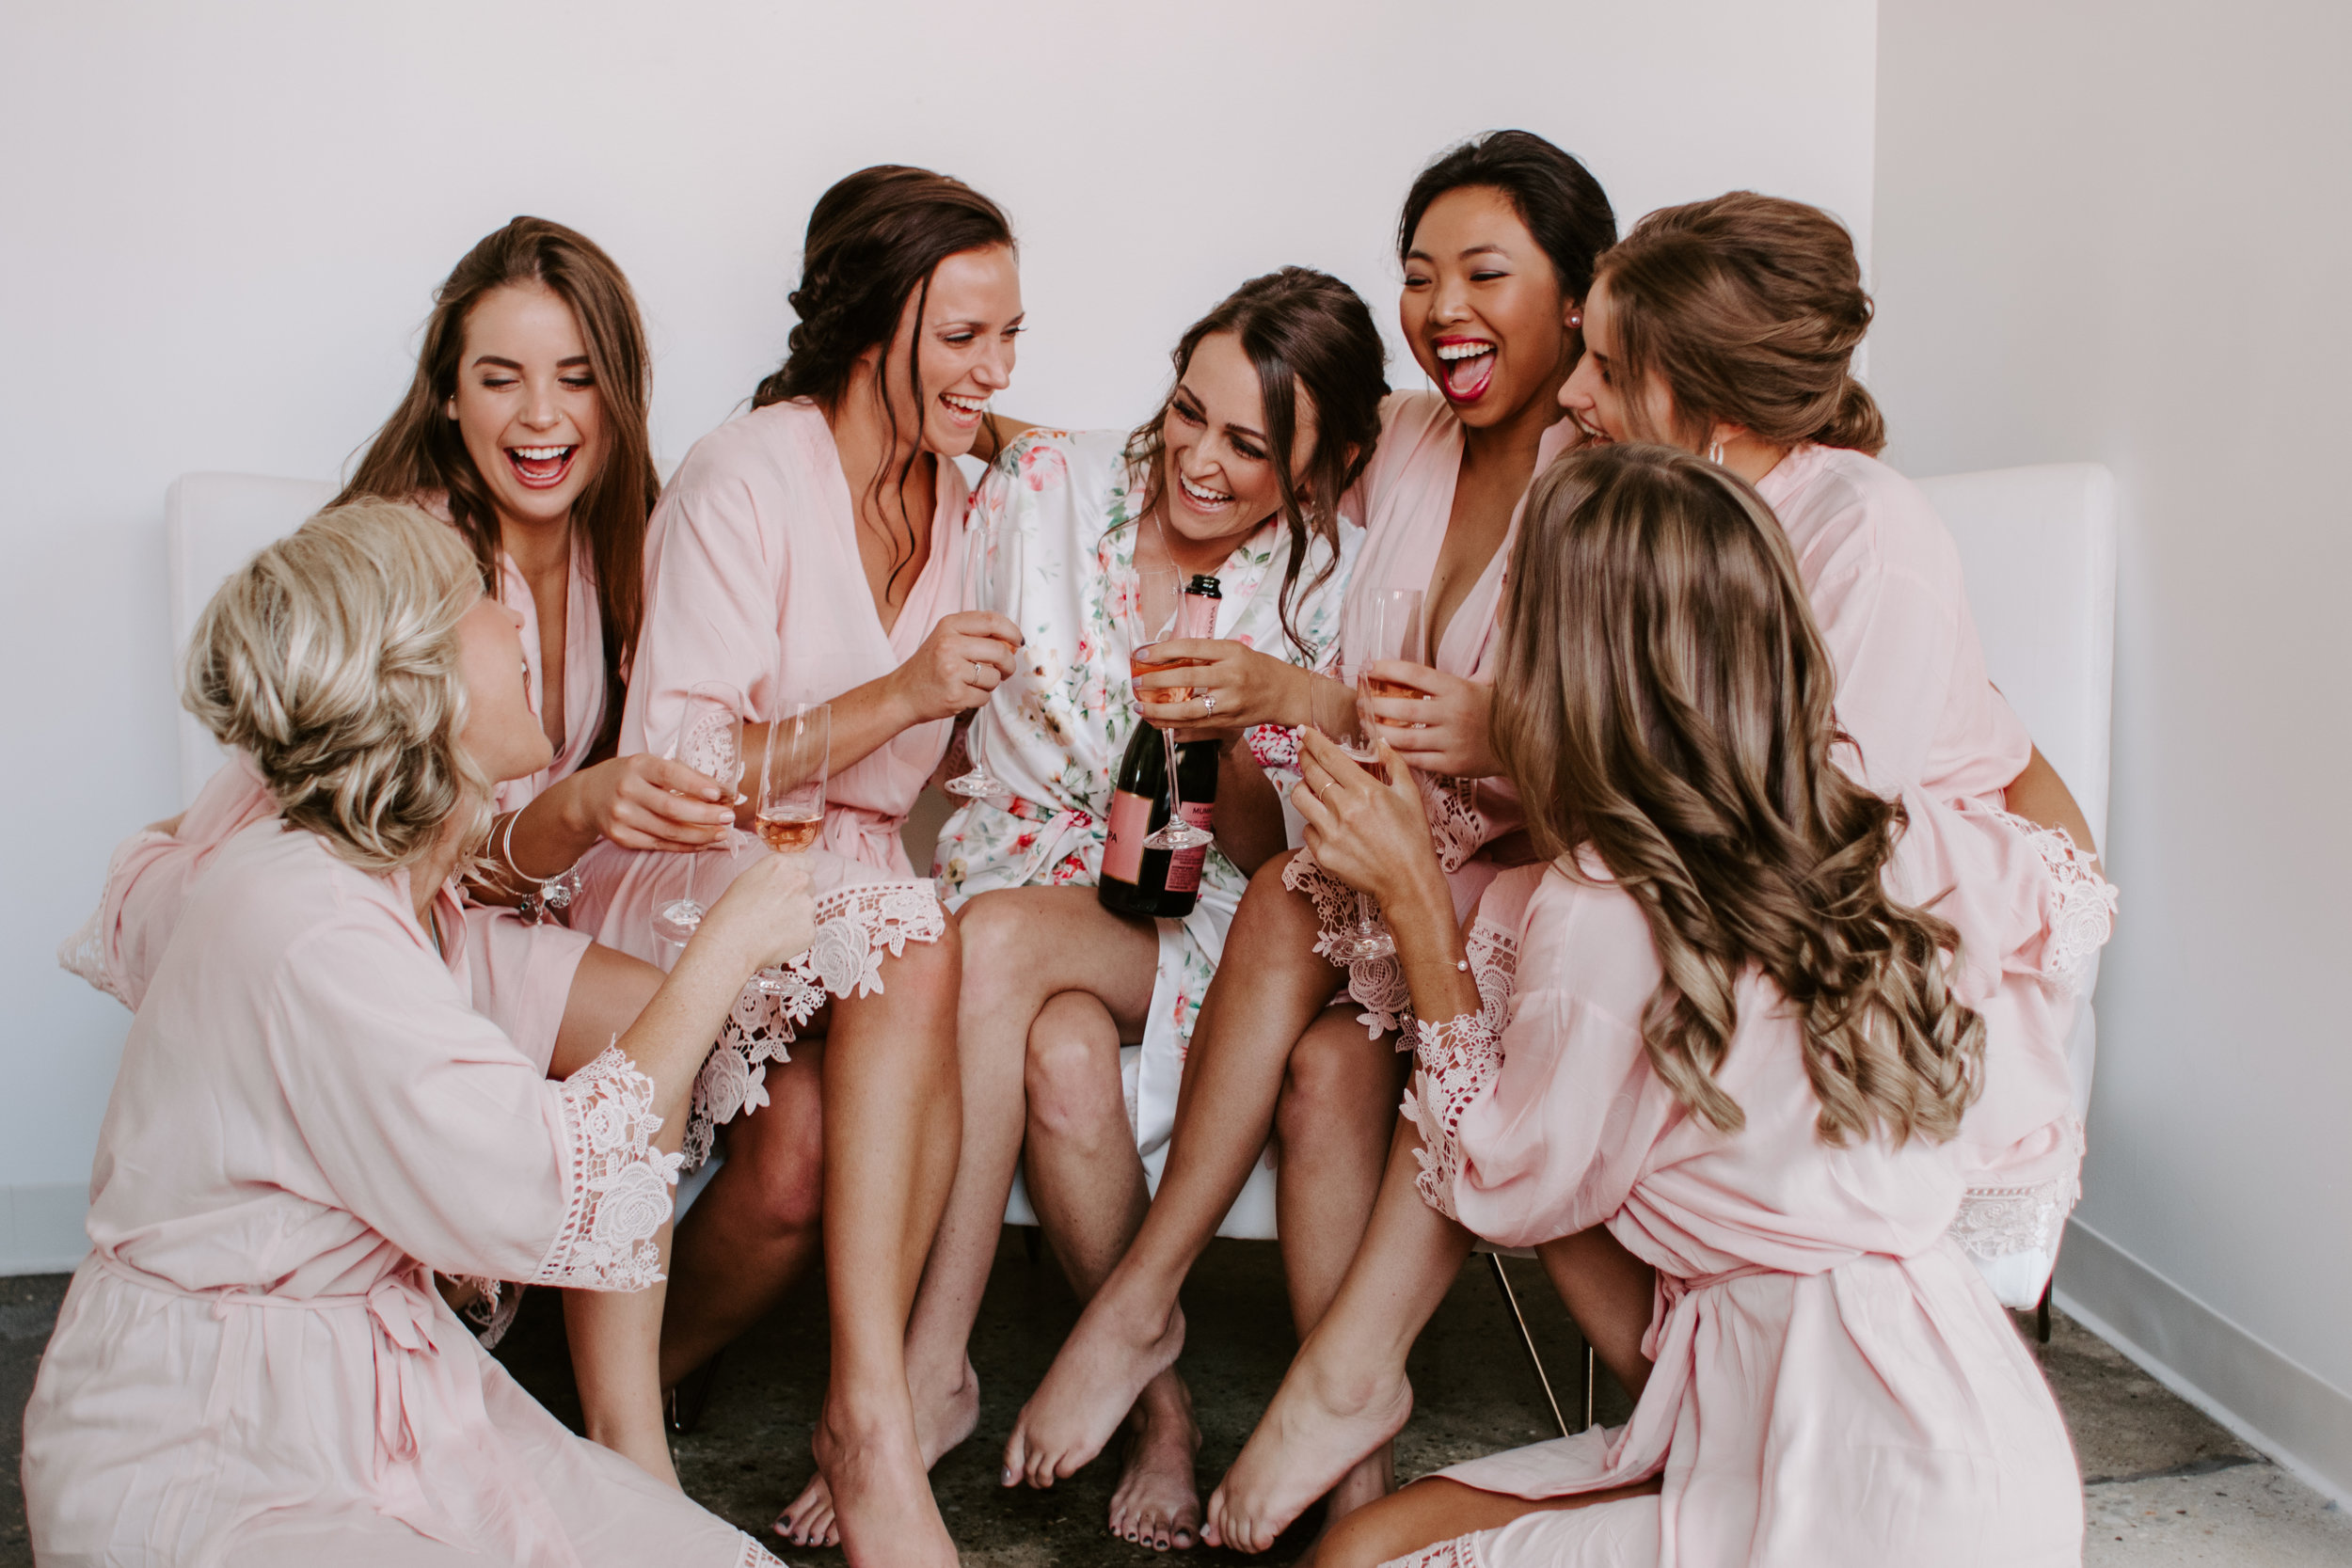 Bridesmaids Matching Wedding Photo by Kerri Carlquist Photography